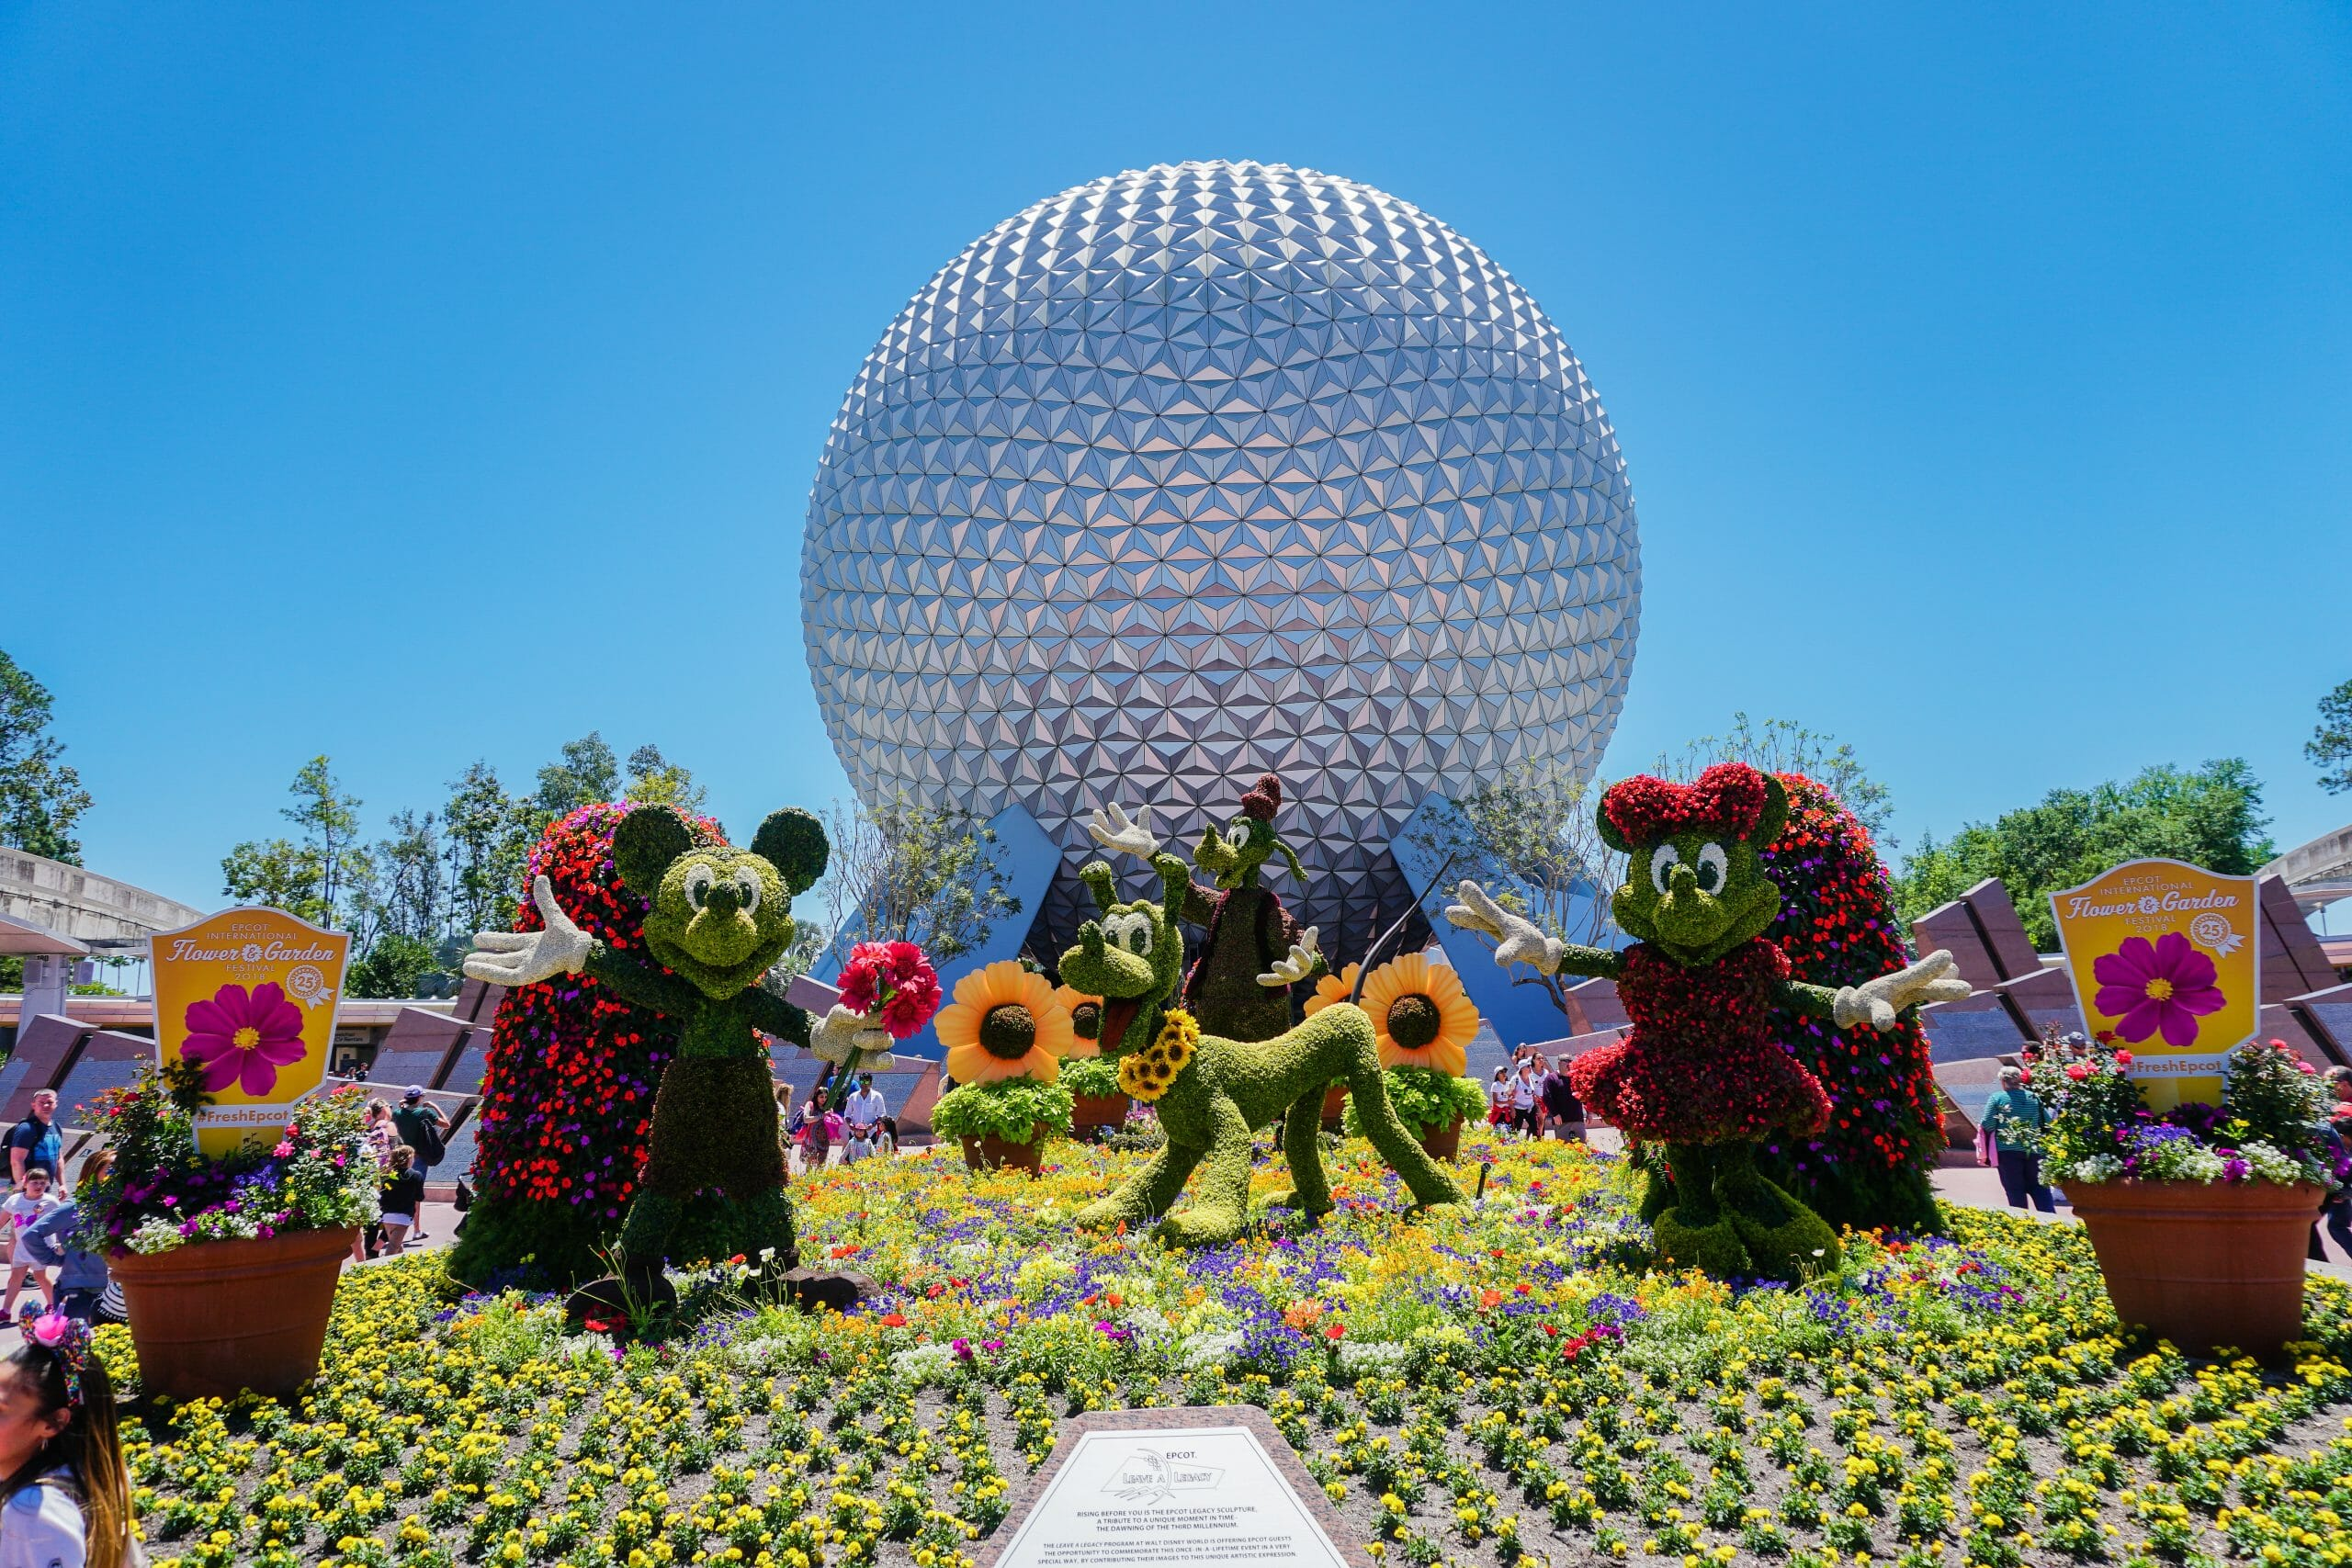 Foto das topiárias do Mickey e da Minnie durante o Flower & Garden, com a Spaceship Earth ao fundo